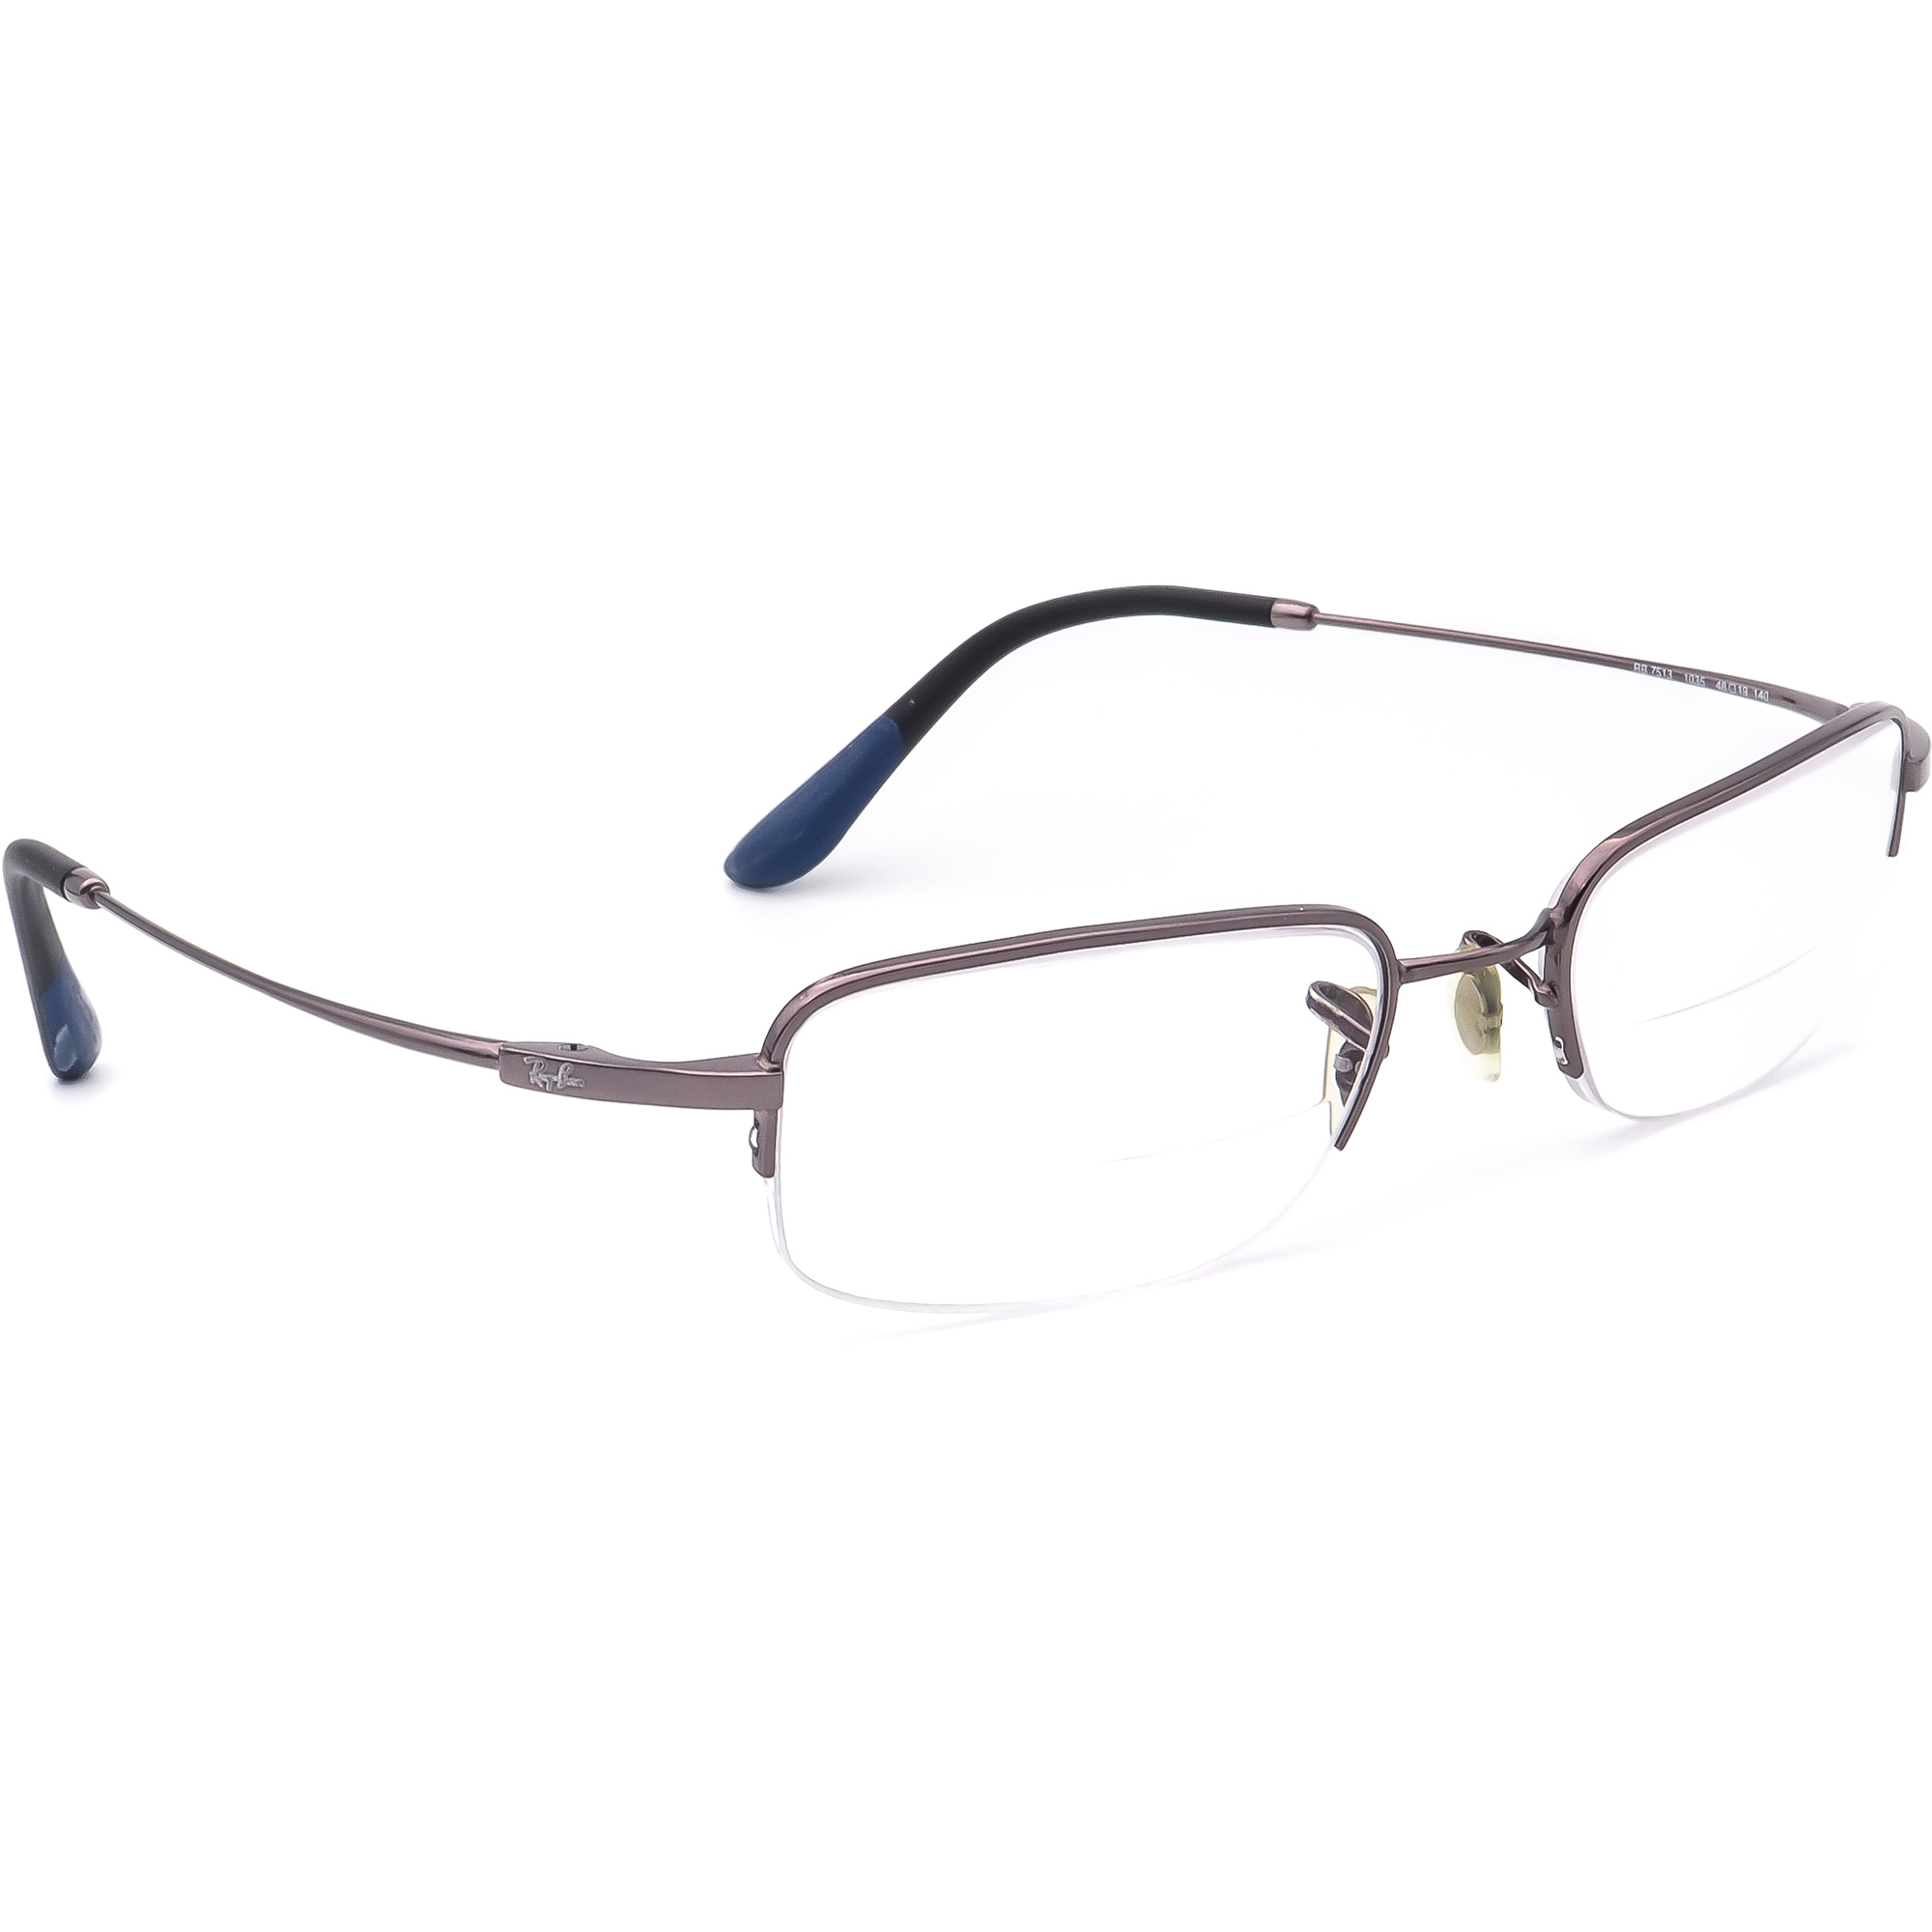 Ray-Ban RB 7513 1035 Memoray Eyeglasses